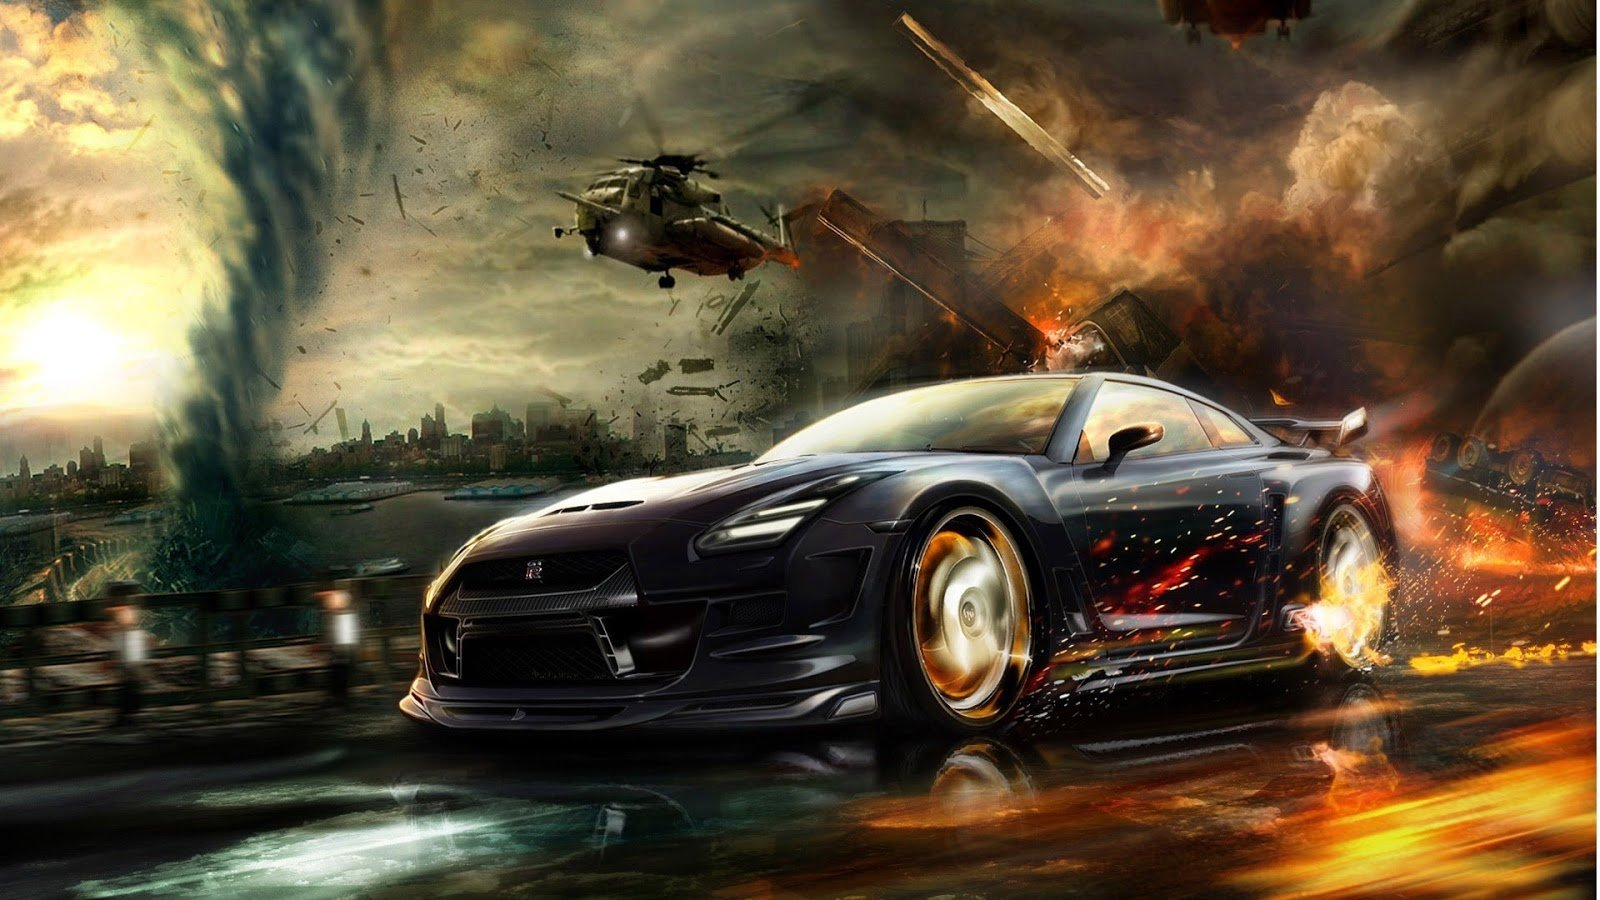 Cool Cars Games >> Free Download Cool Car Games Wallpaper 1600x900 For Your